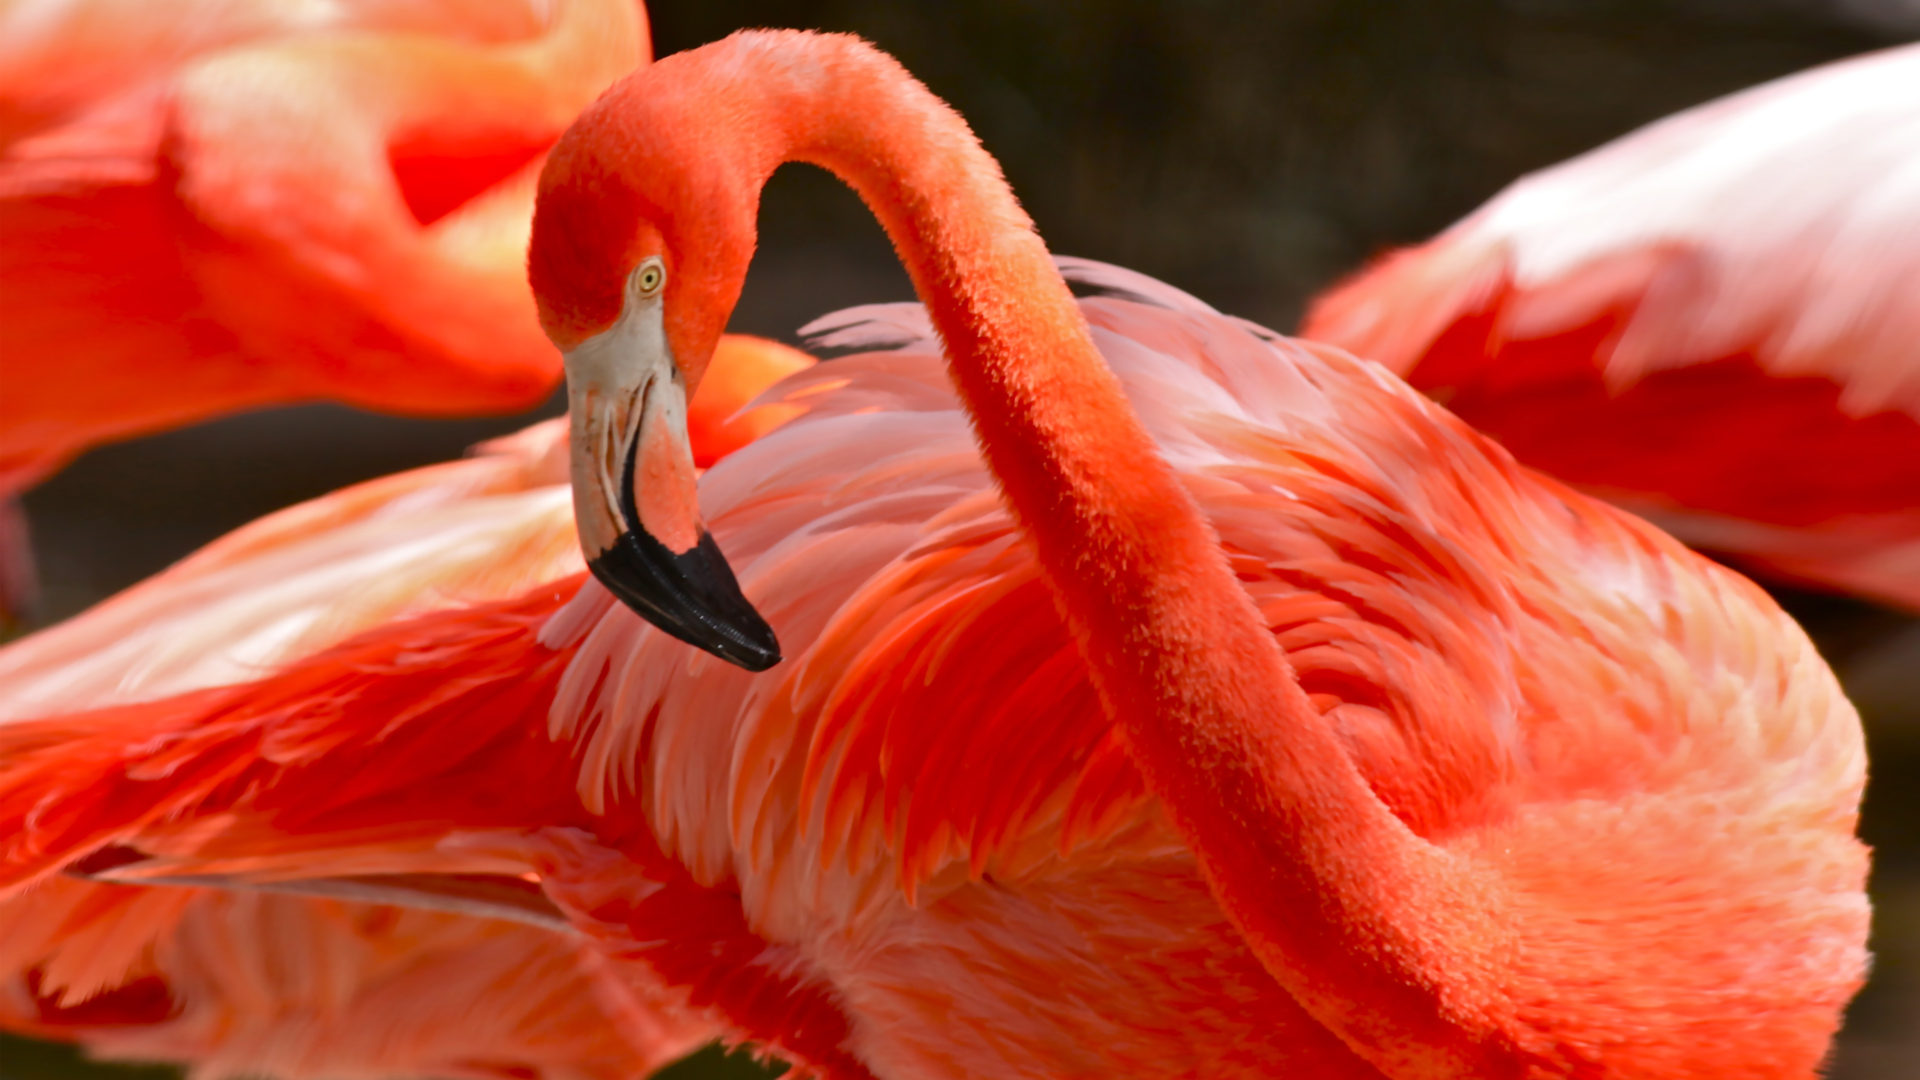 Eagle Wallpaper Iphone X Caribbean Flamingos Pink Or Red Color Of Flamingos Comes